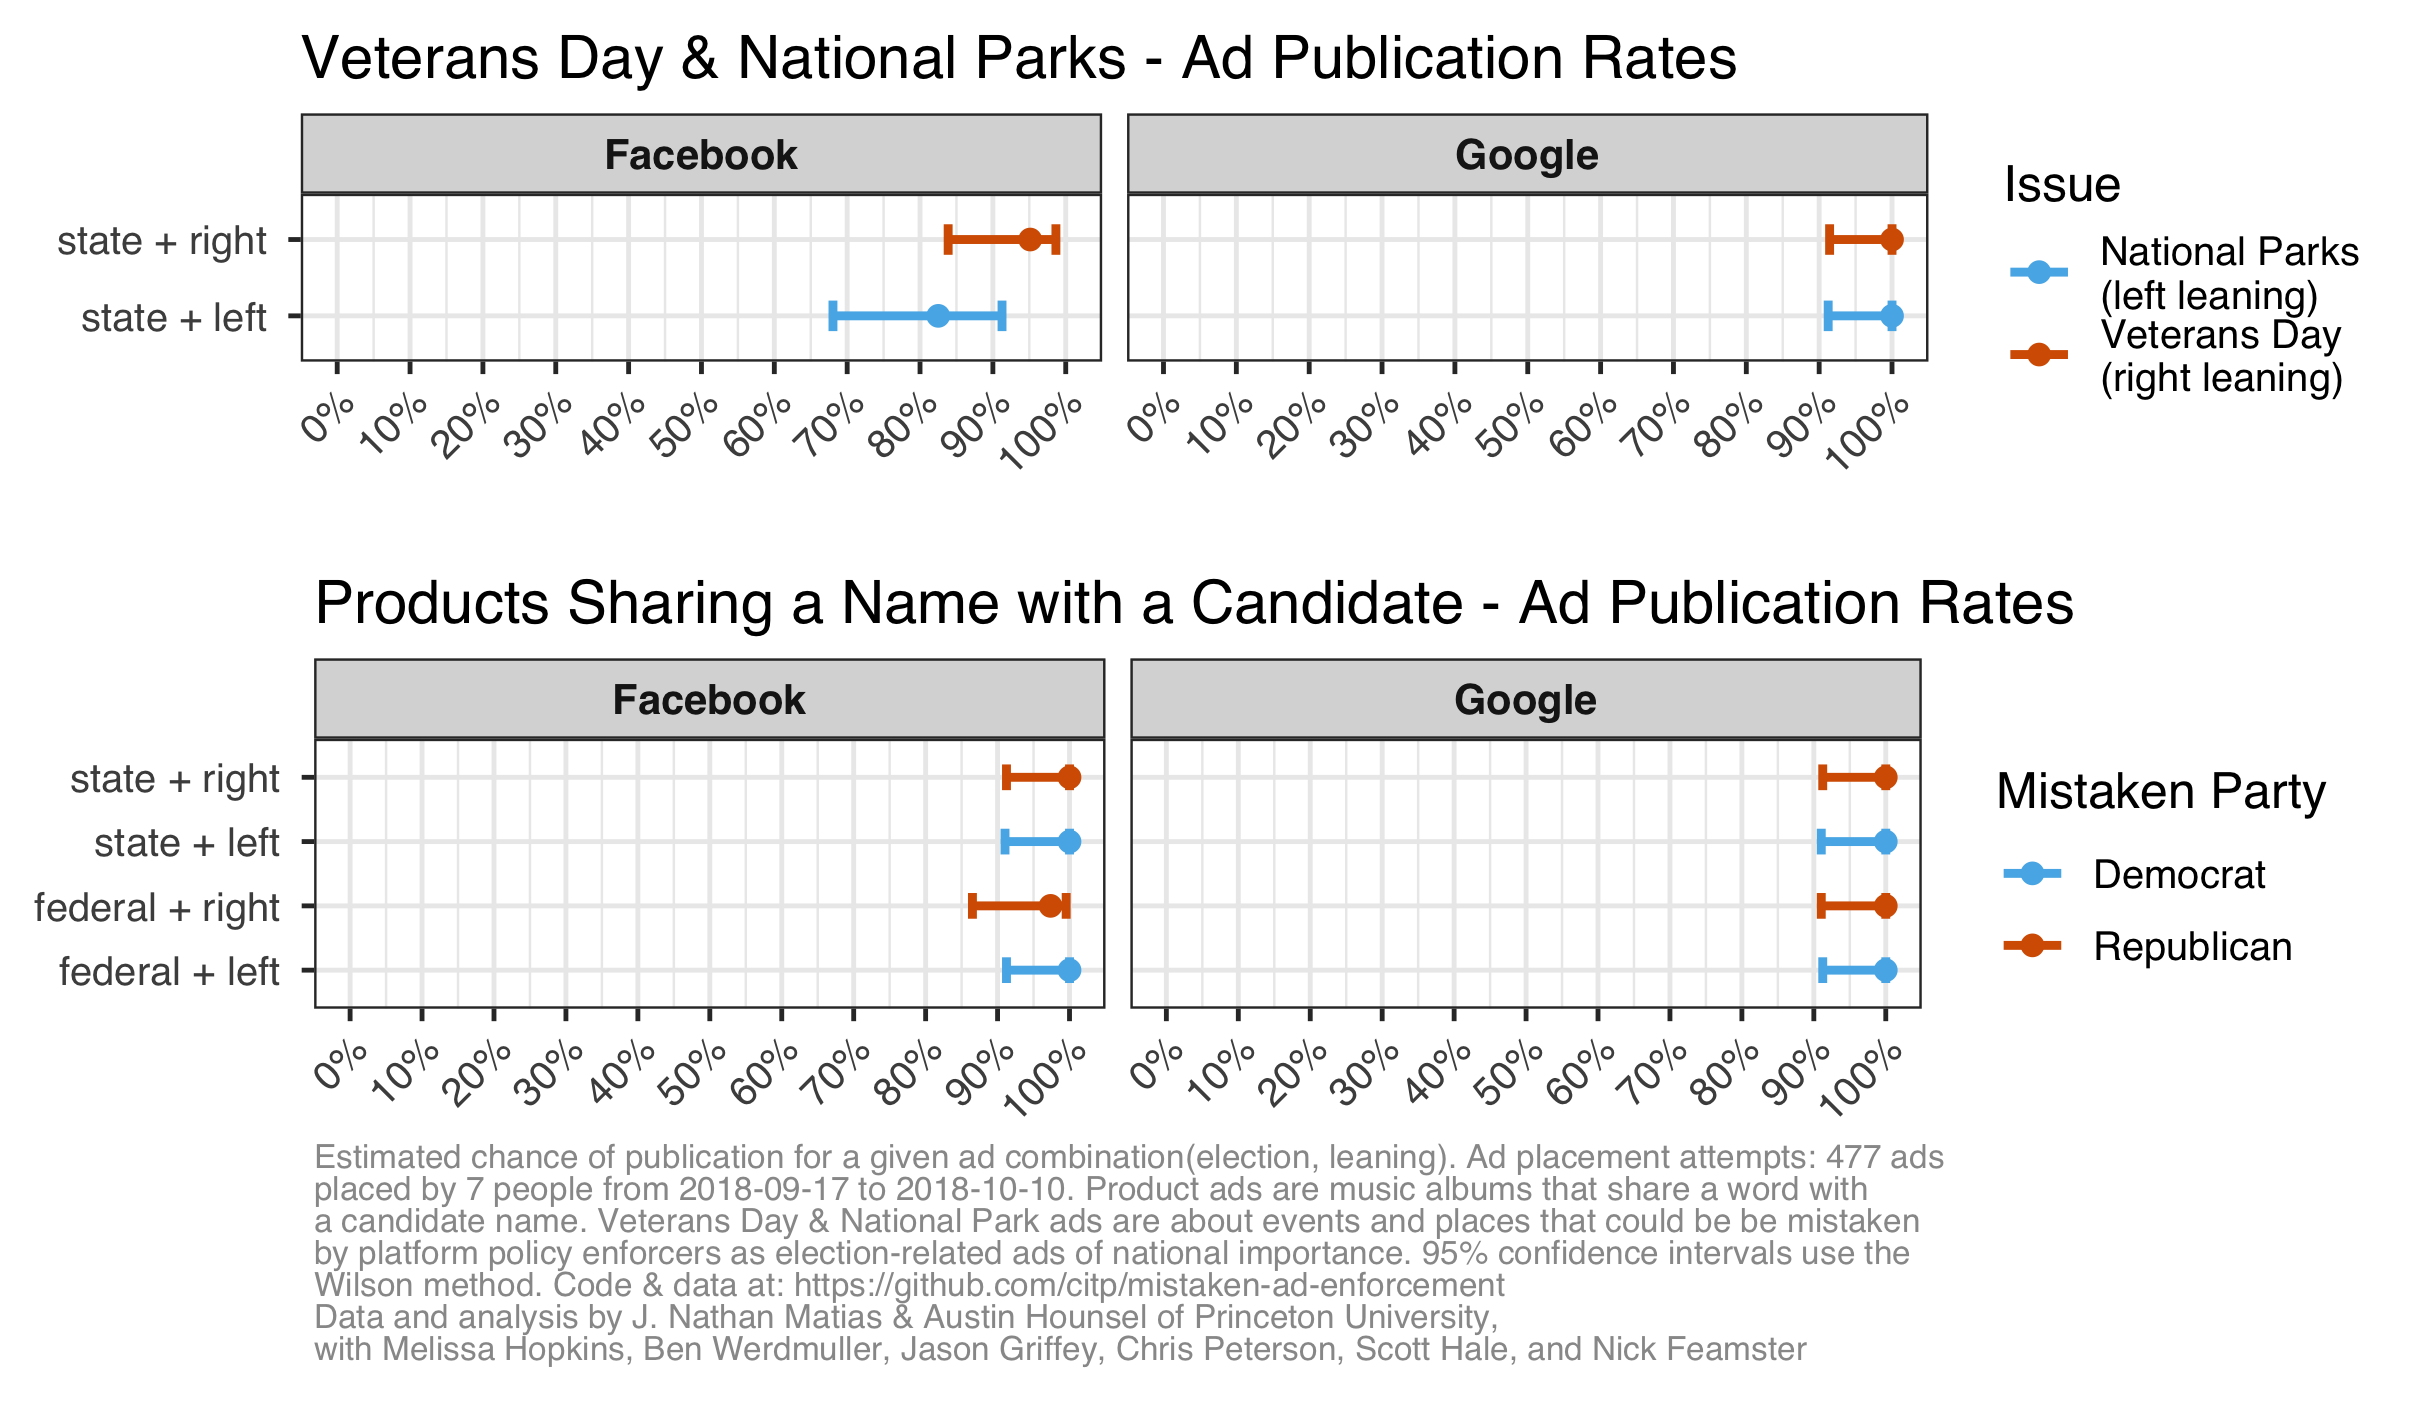 Comparing Facebook and Google's publication rates of advertisements for veterans day, parks, and products